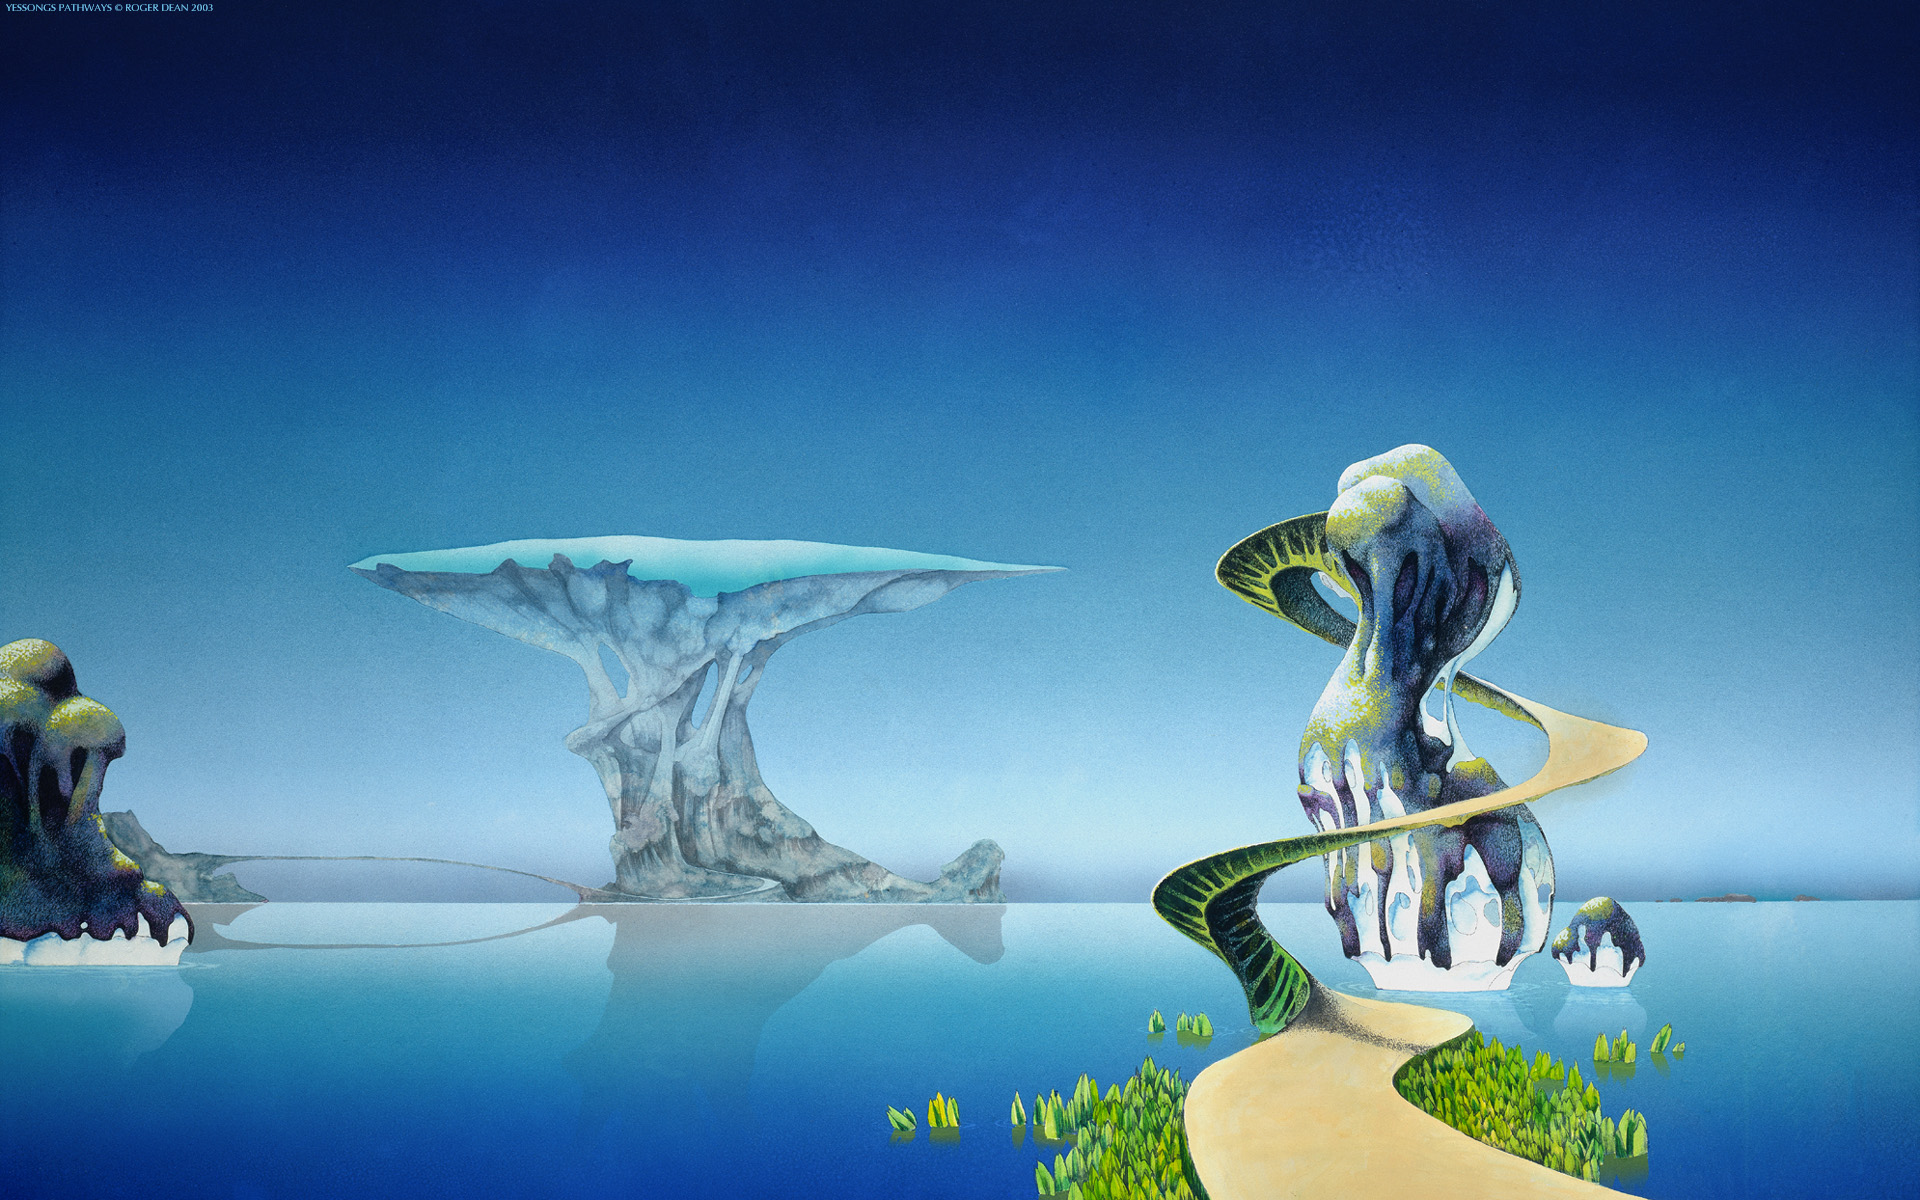 surreal wallpapers full hd 1920 - photo #25